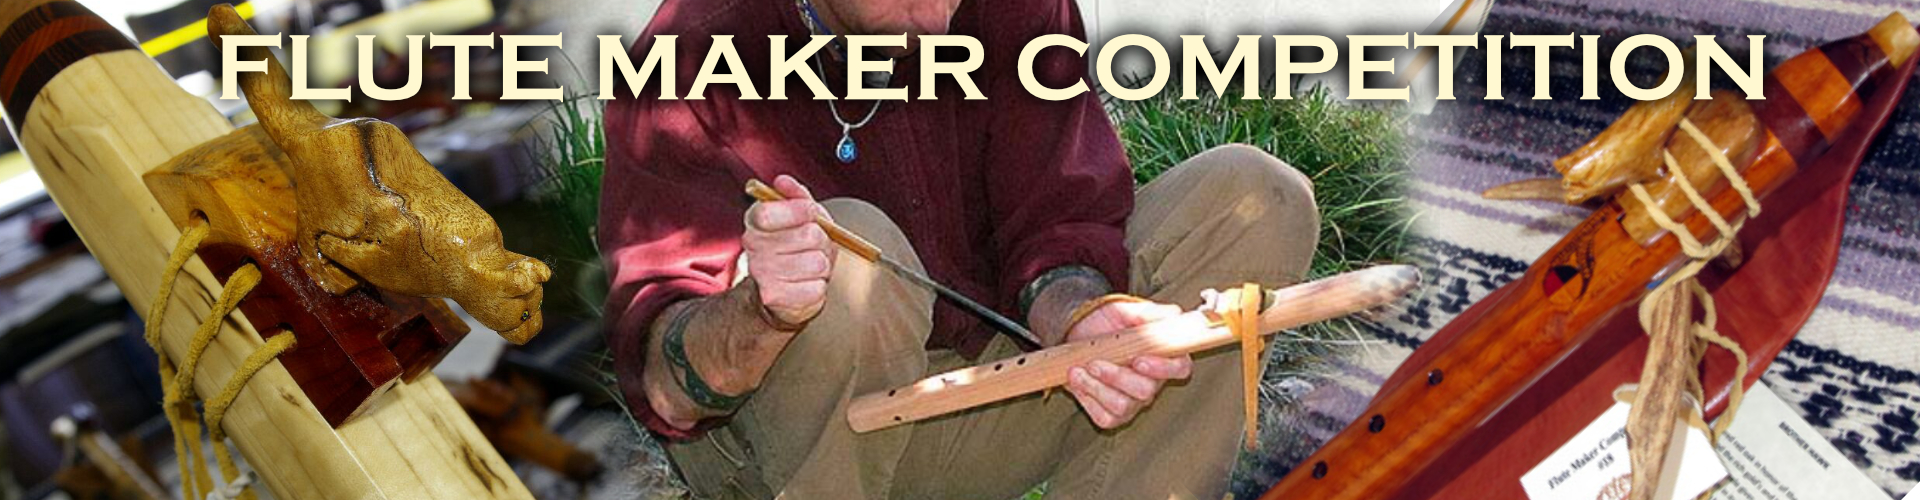 Flute Makers Competition Header